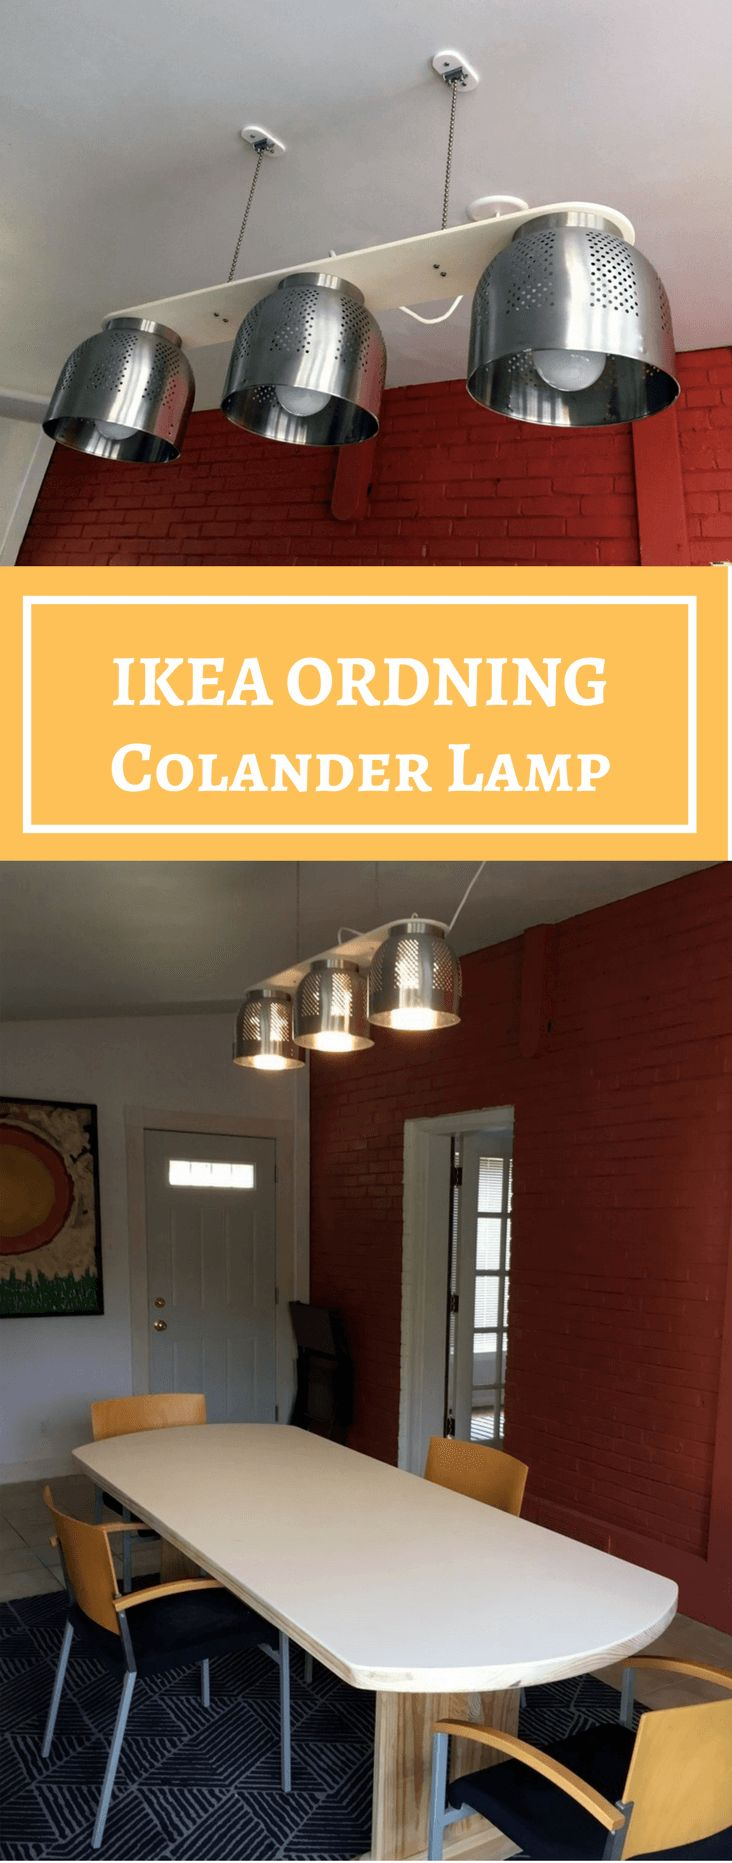 A Colander Chandelier, a modern dining table light http://www.ikeahackers.net/2017/10/colander-chandelier-modern-dining-table-light.html